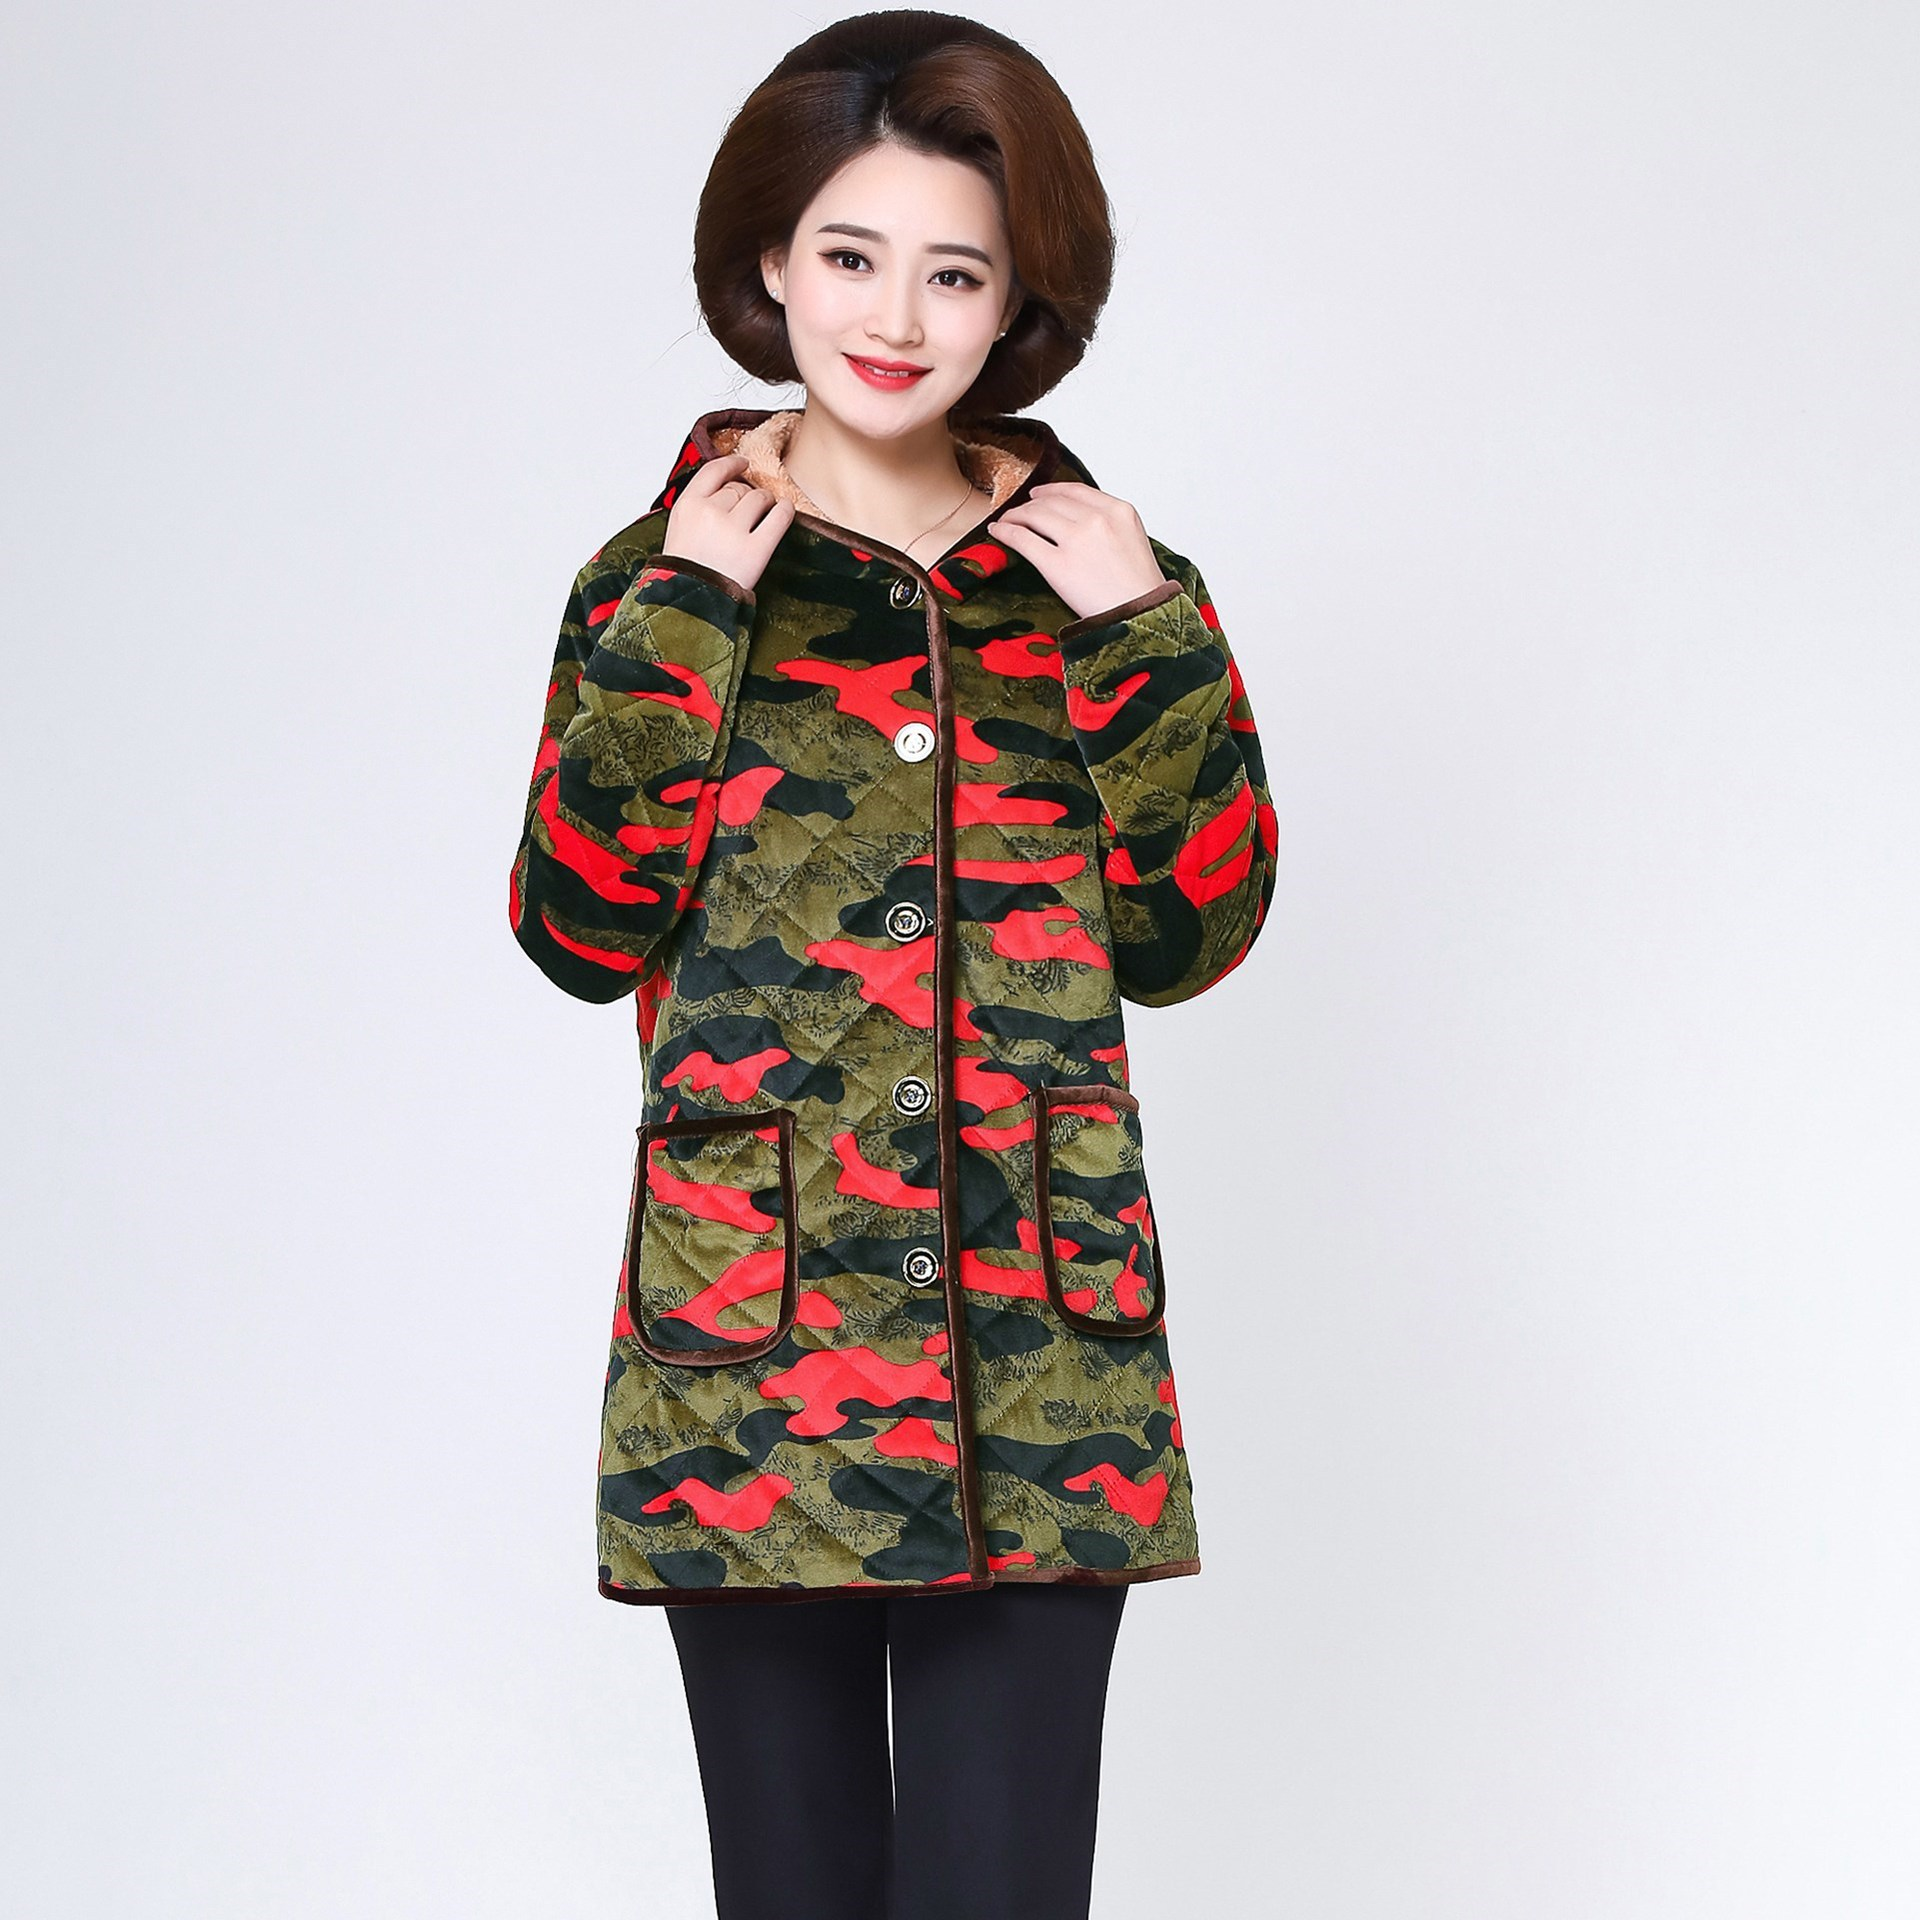 Coat Korean style Style Kitchen Mom Middle aged Large Size Overclothes Extraordinary Women's Winter Brushed And Thick Adult Apro|  - title=